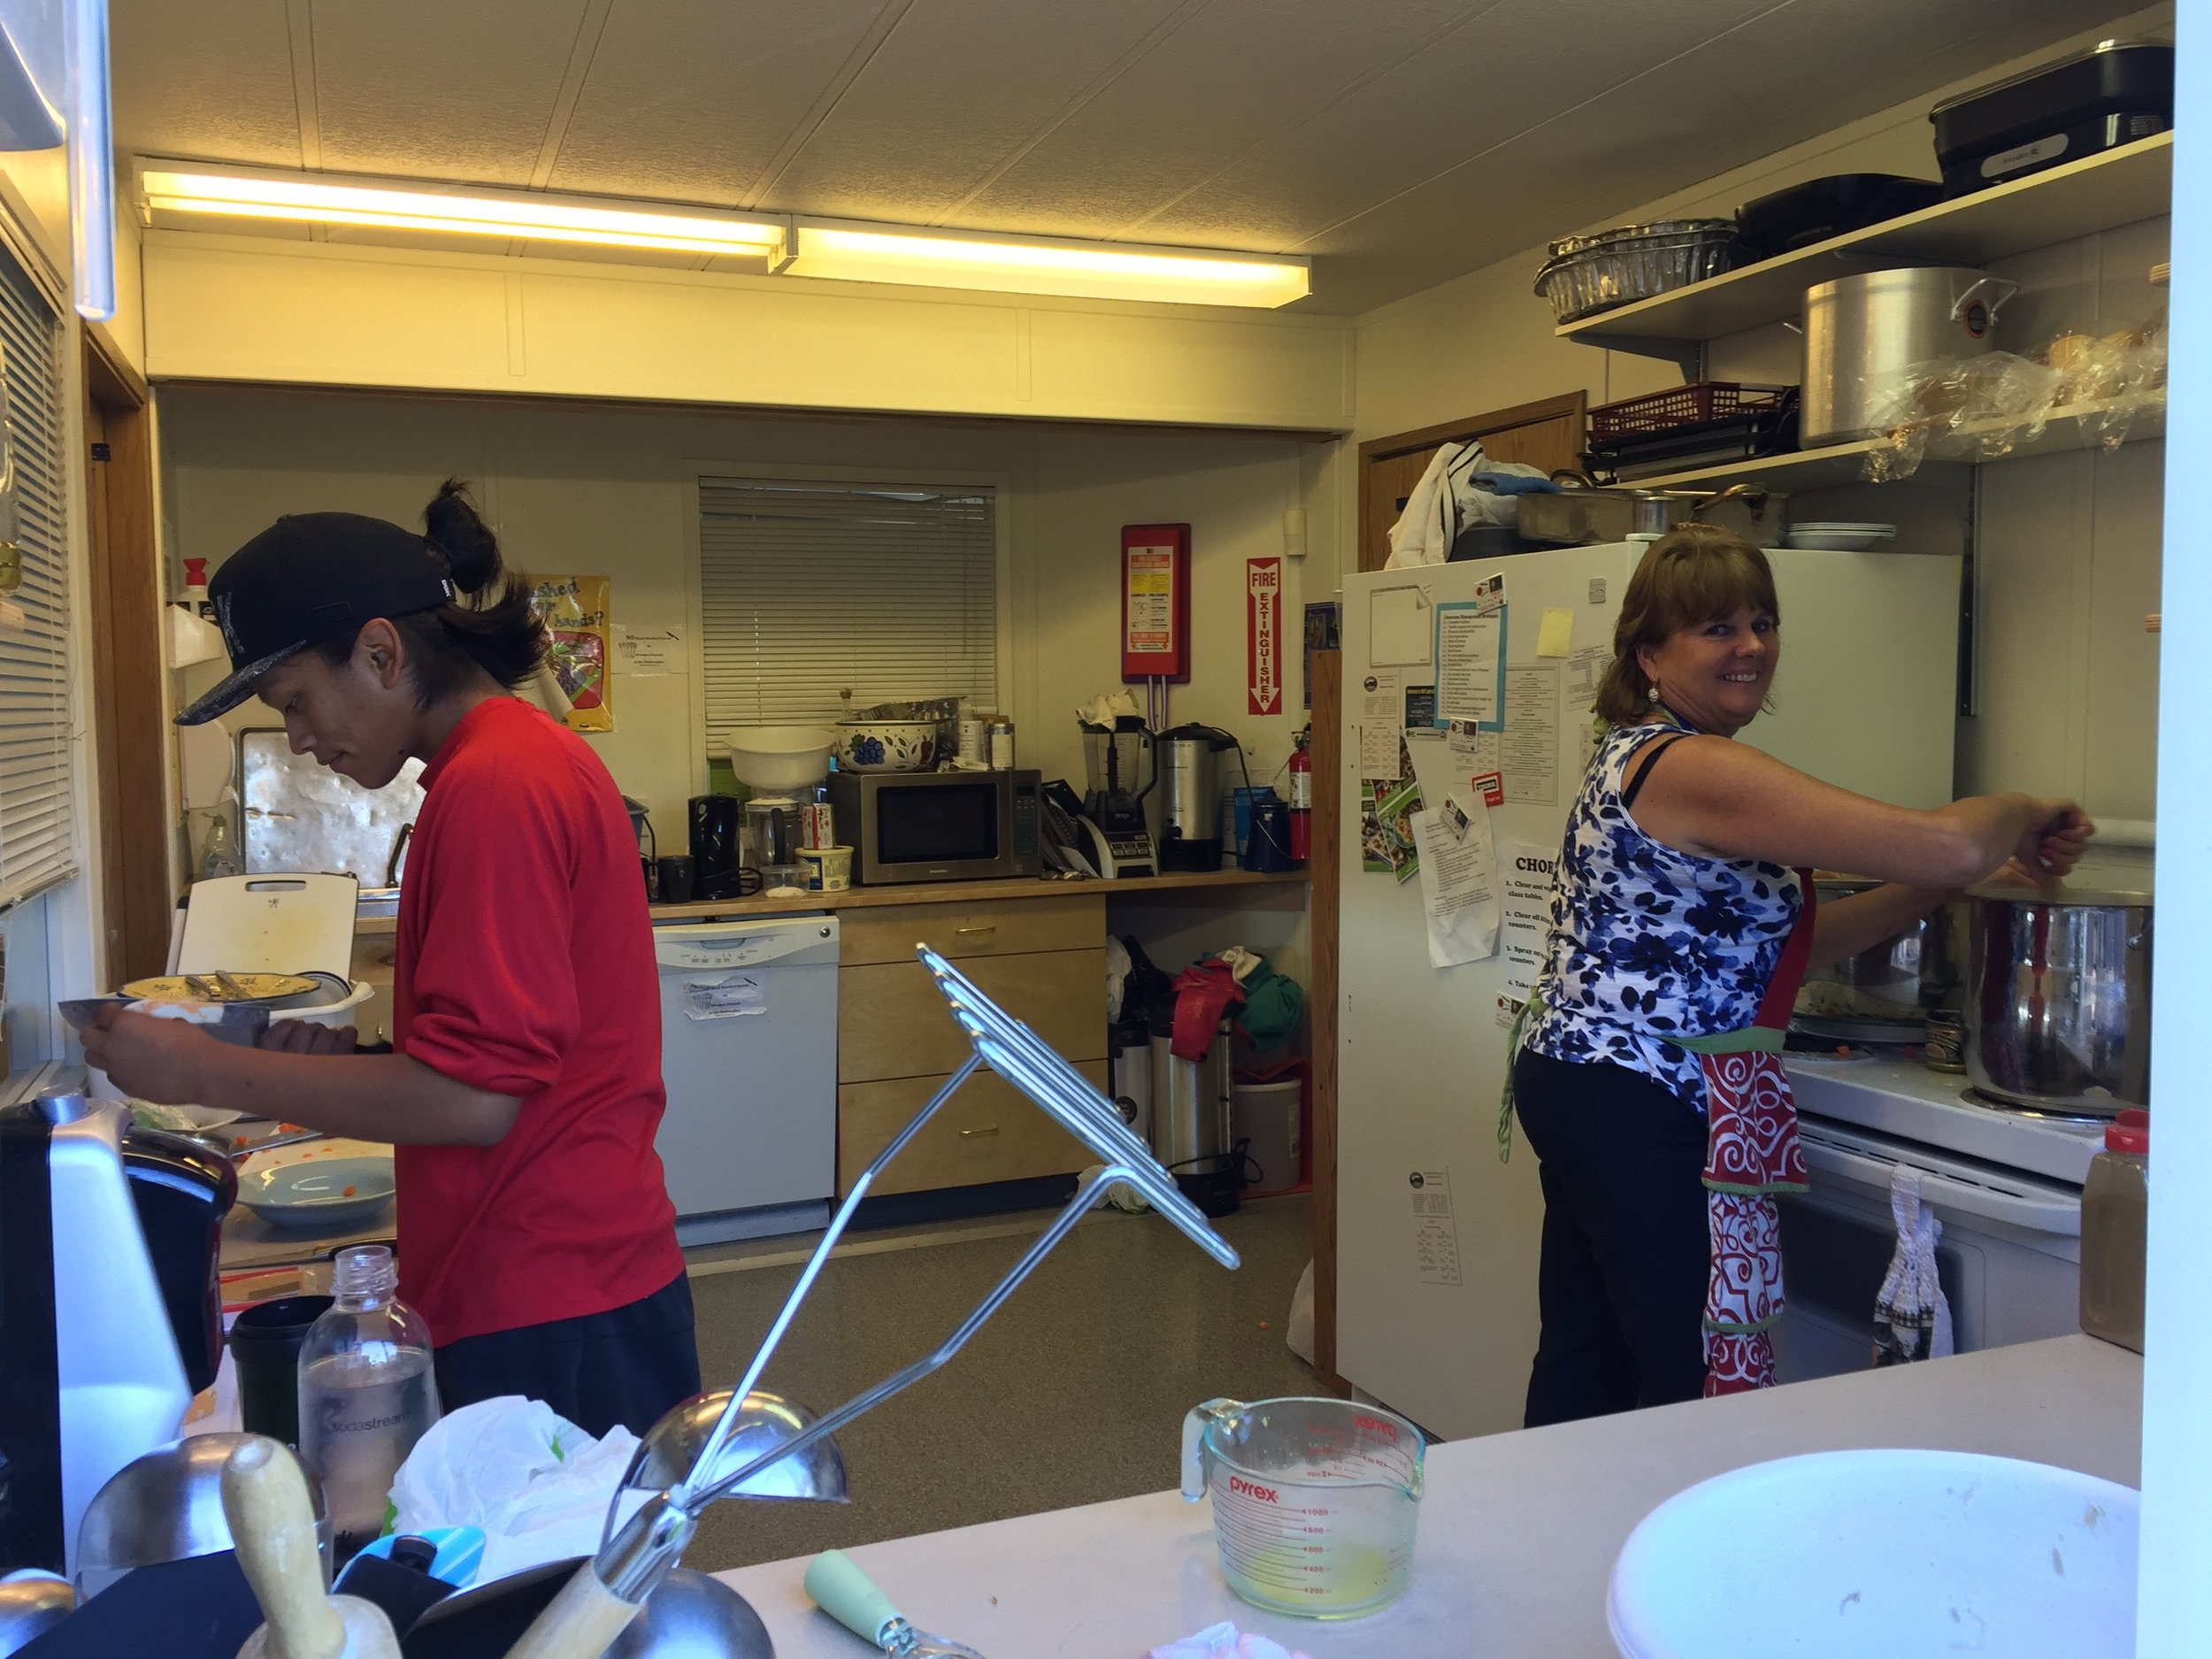 Isaiah finds time to help Debbie make lunch! Isaiah has mad skills making grilled cheese sandwiches!